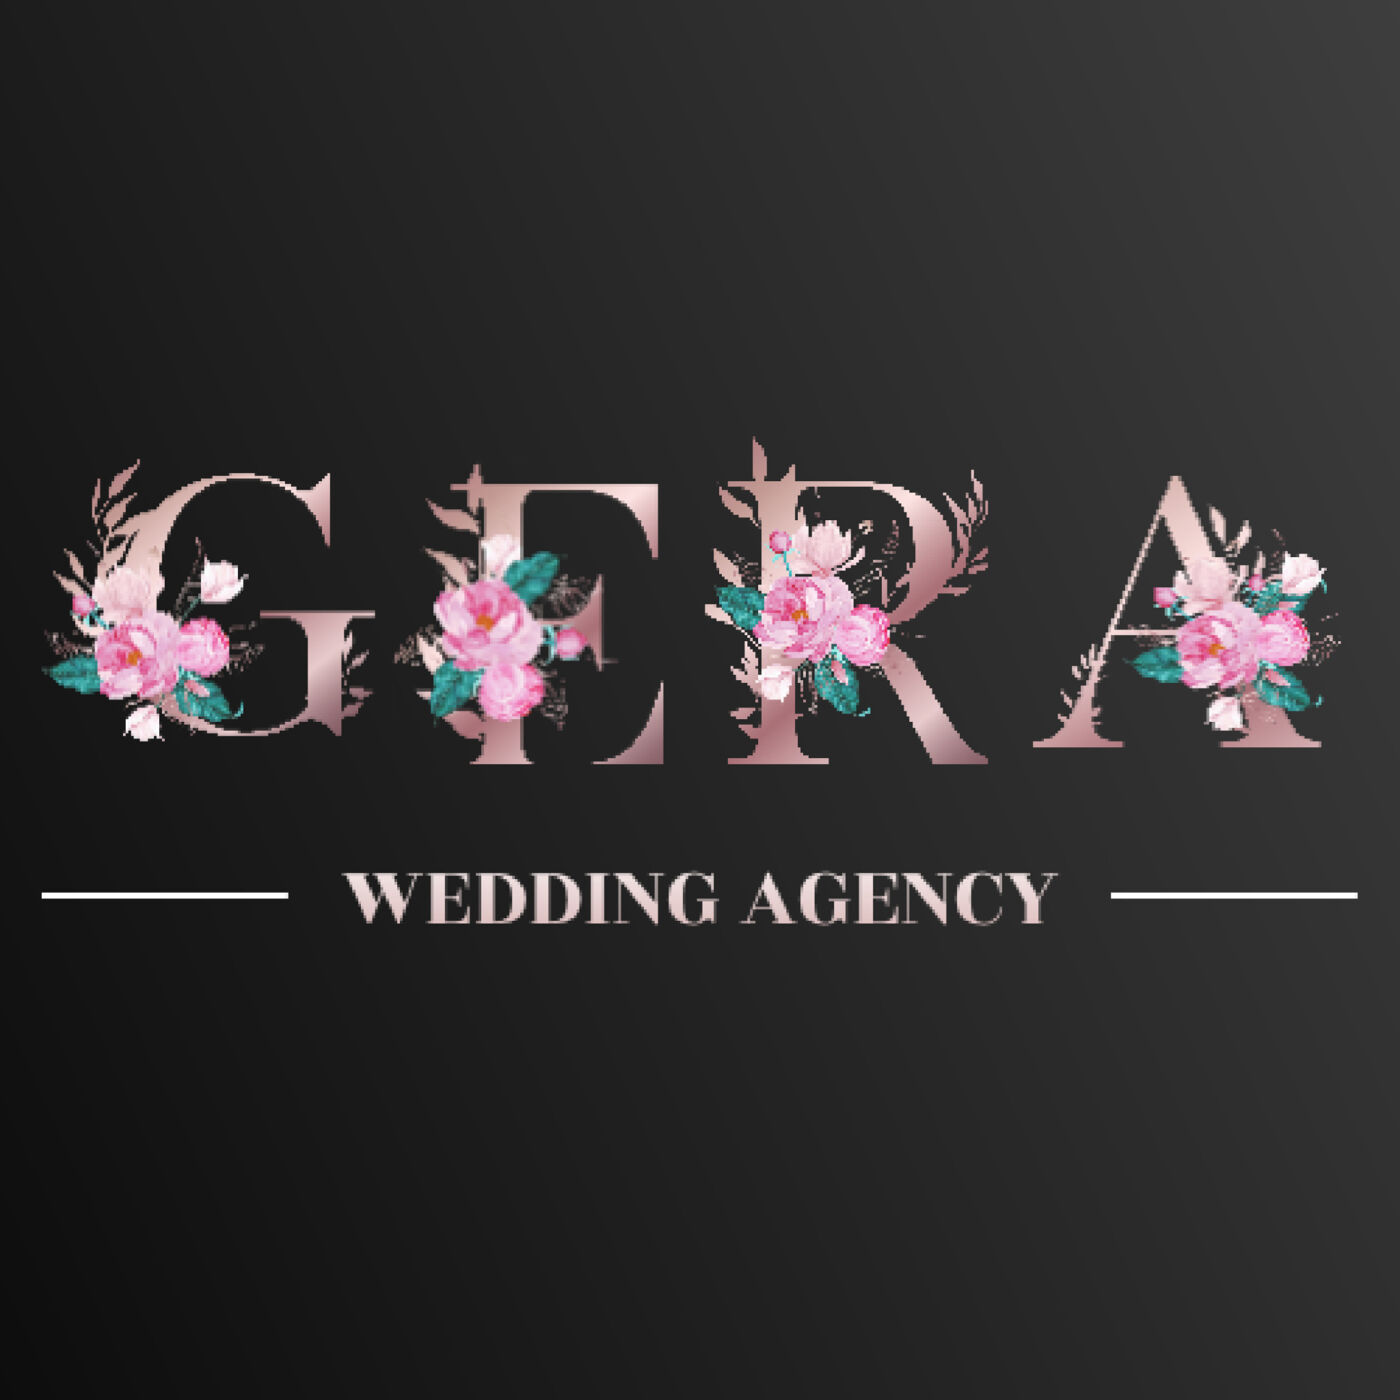 gera wedding agency